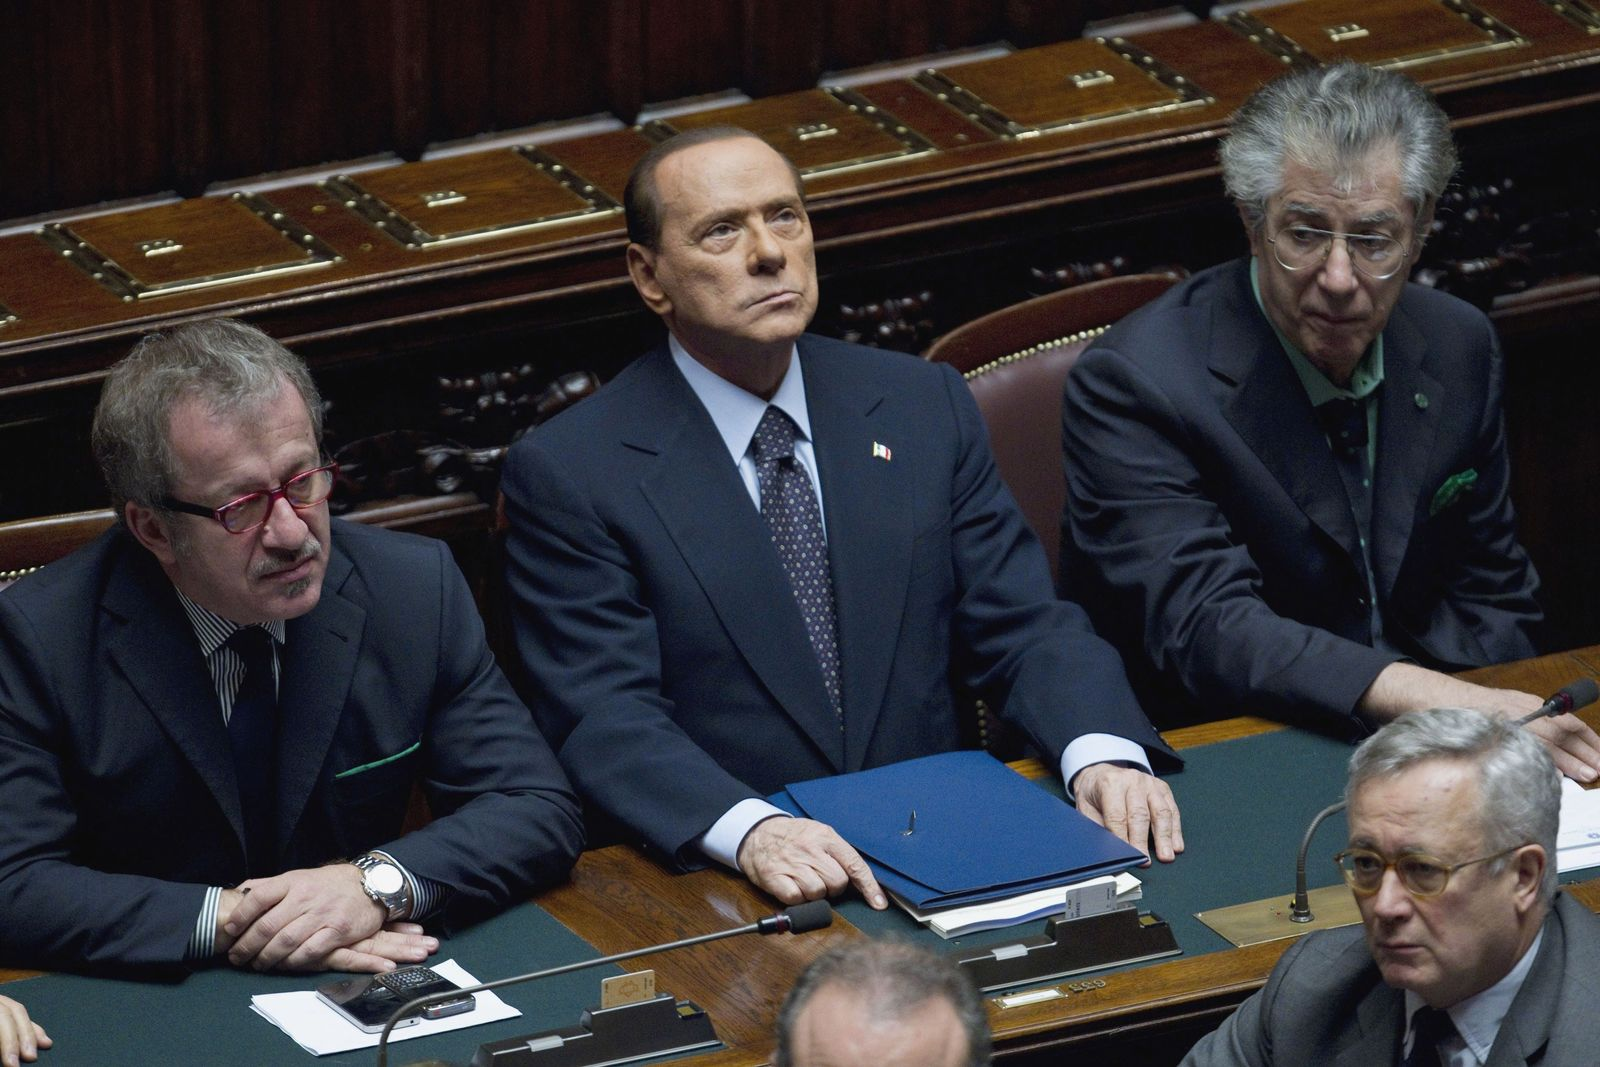 Berlusconi/ Parlament/ Abstimmung